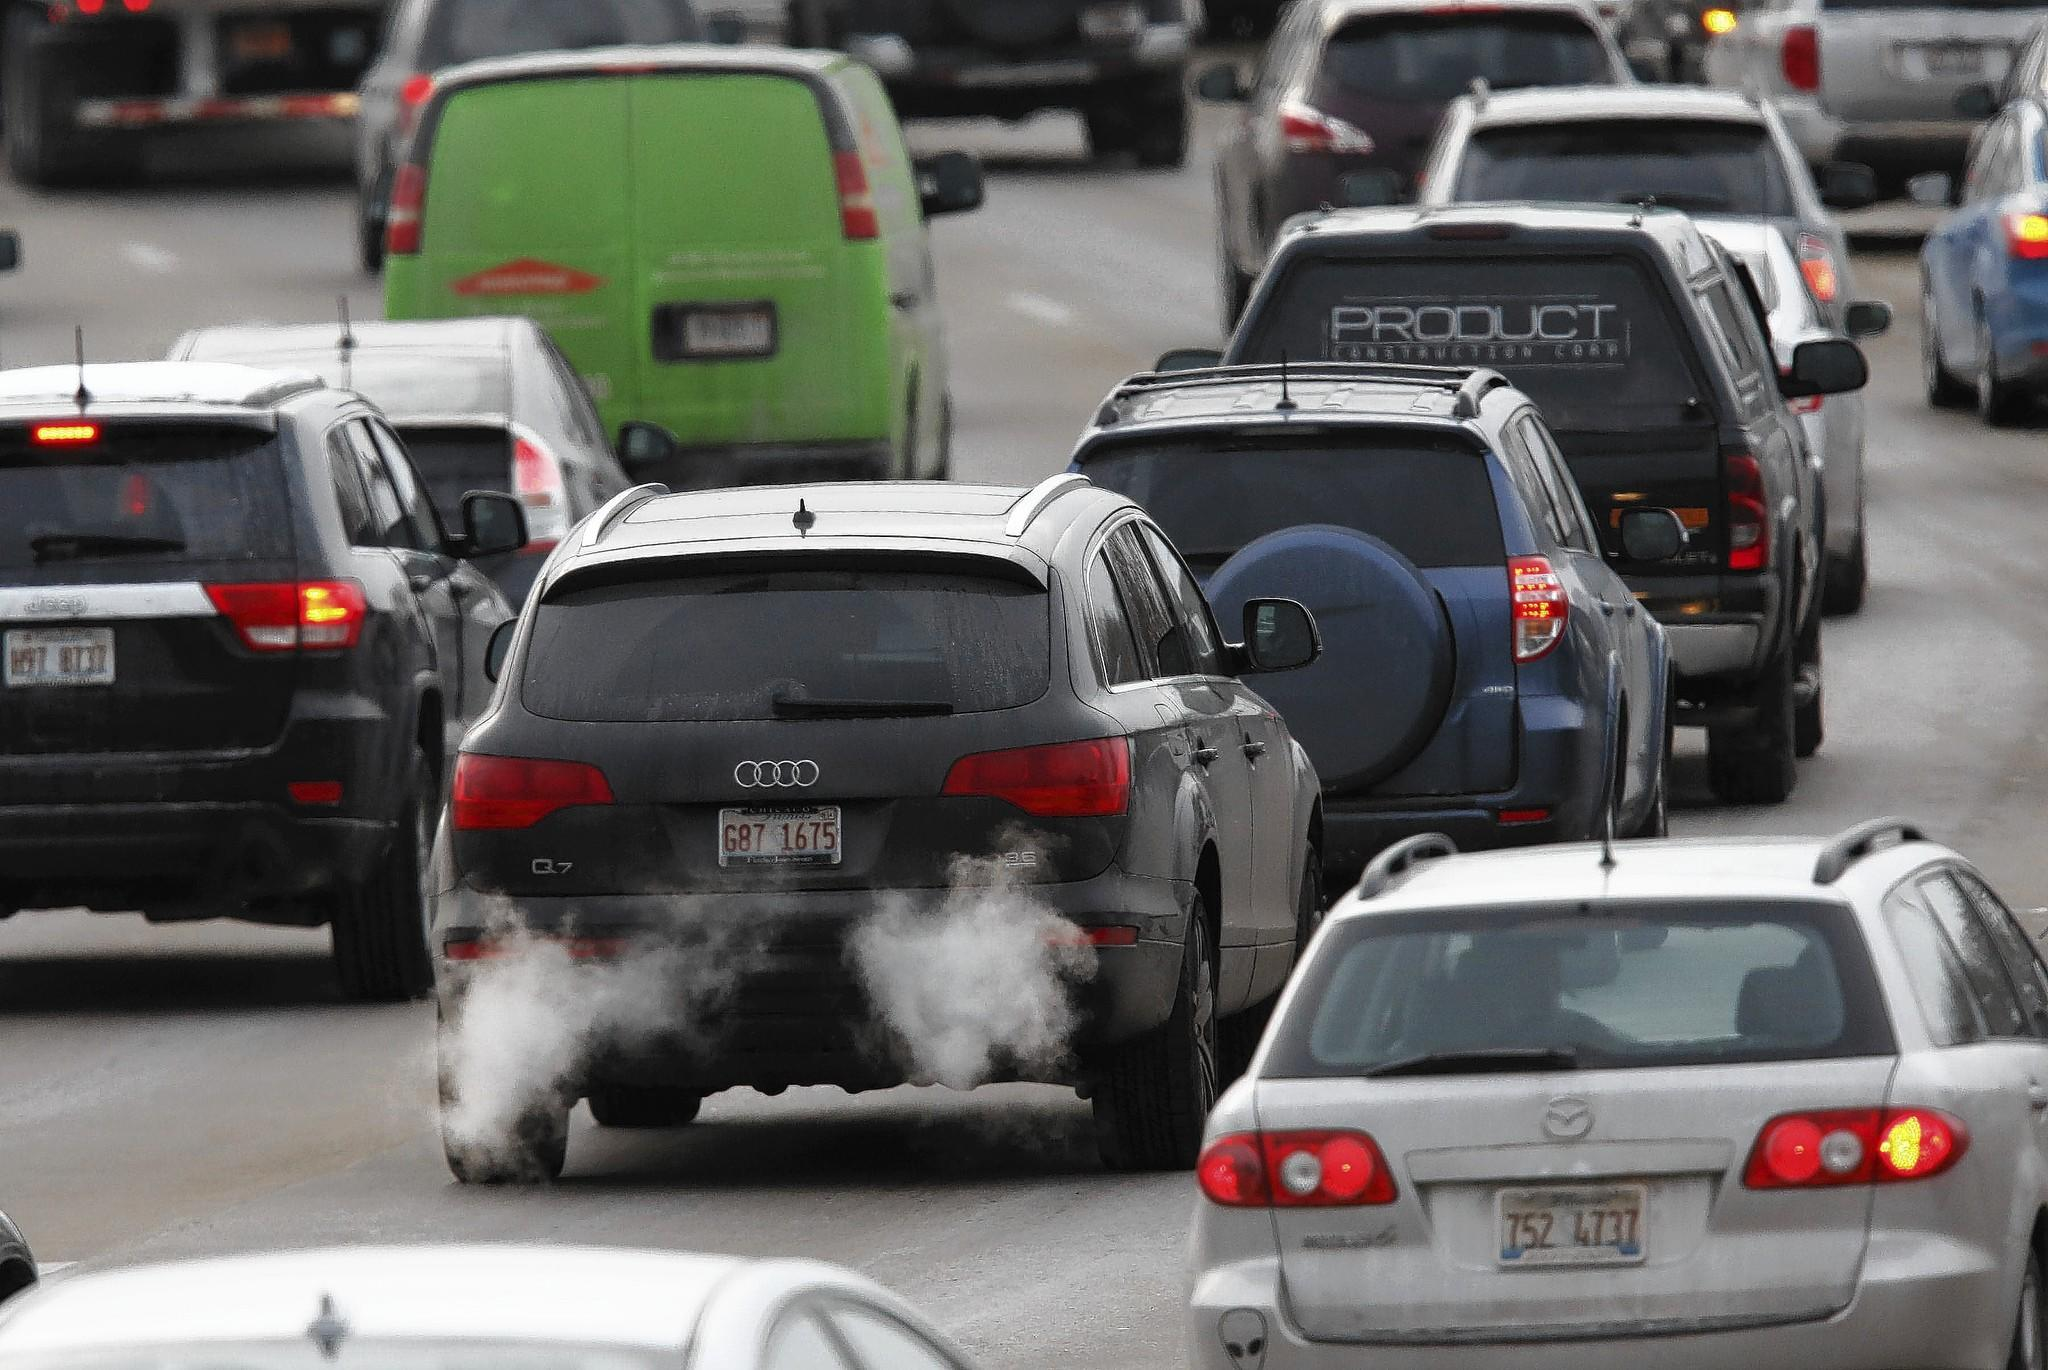 The EPA is seeking a more stringent smog standard to reduce the amount of lung-damaging pollution in the U.S. -- a rule that could affect more than 780,000 manufacturing jobs nationwide.